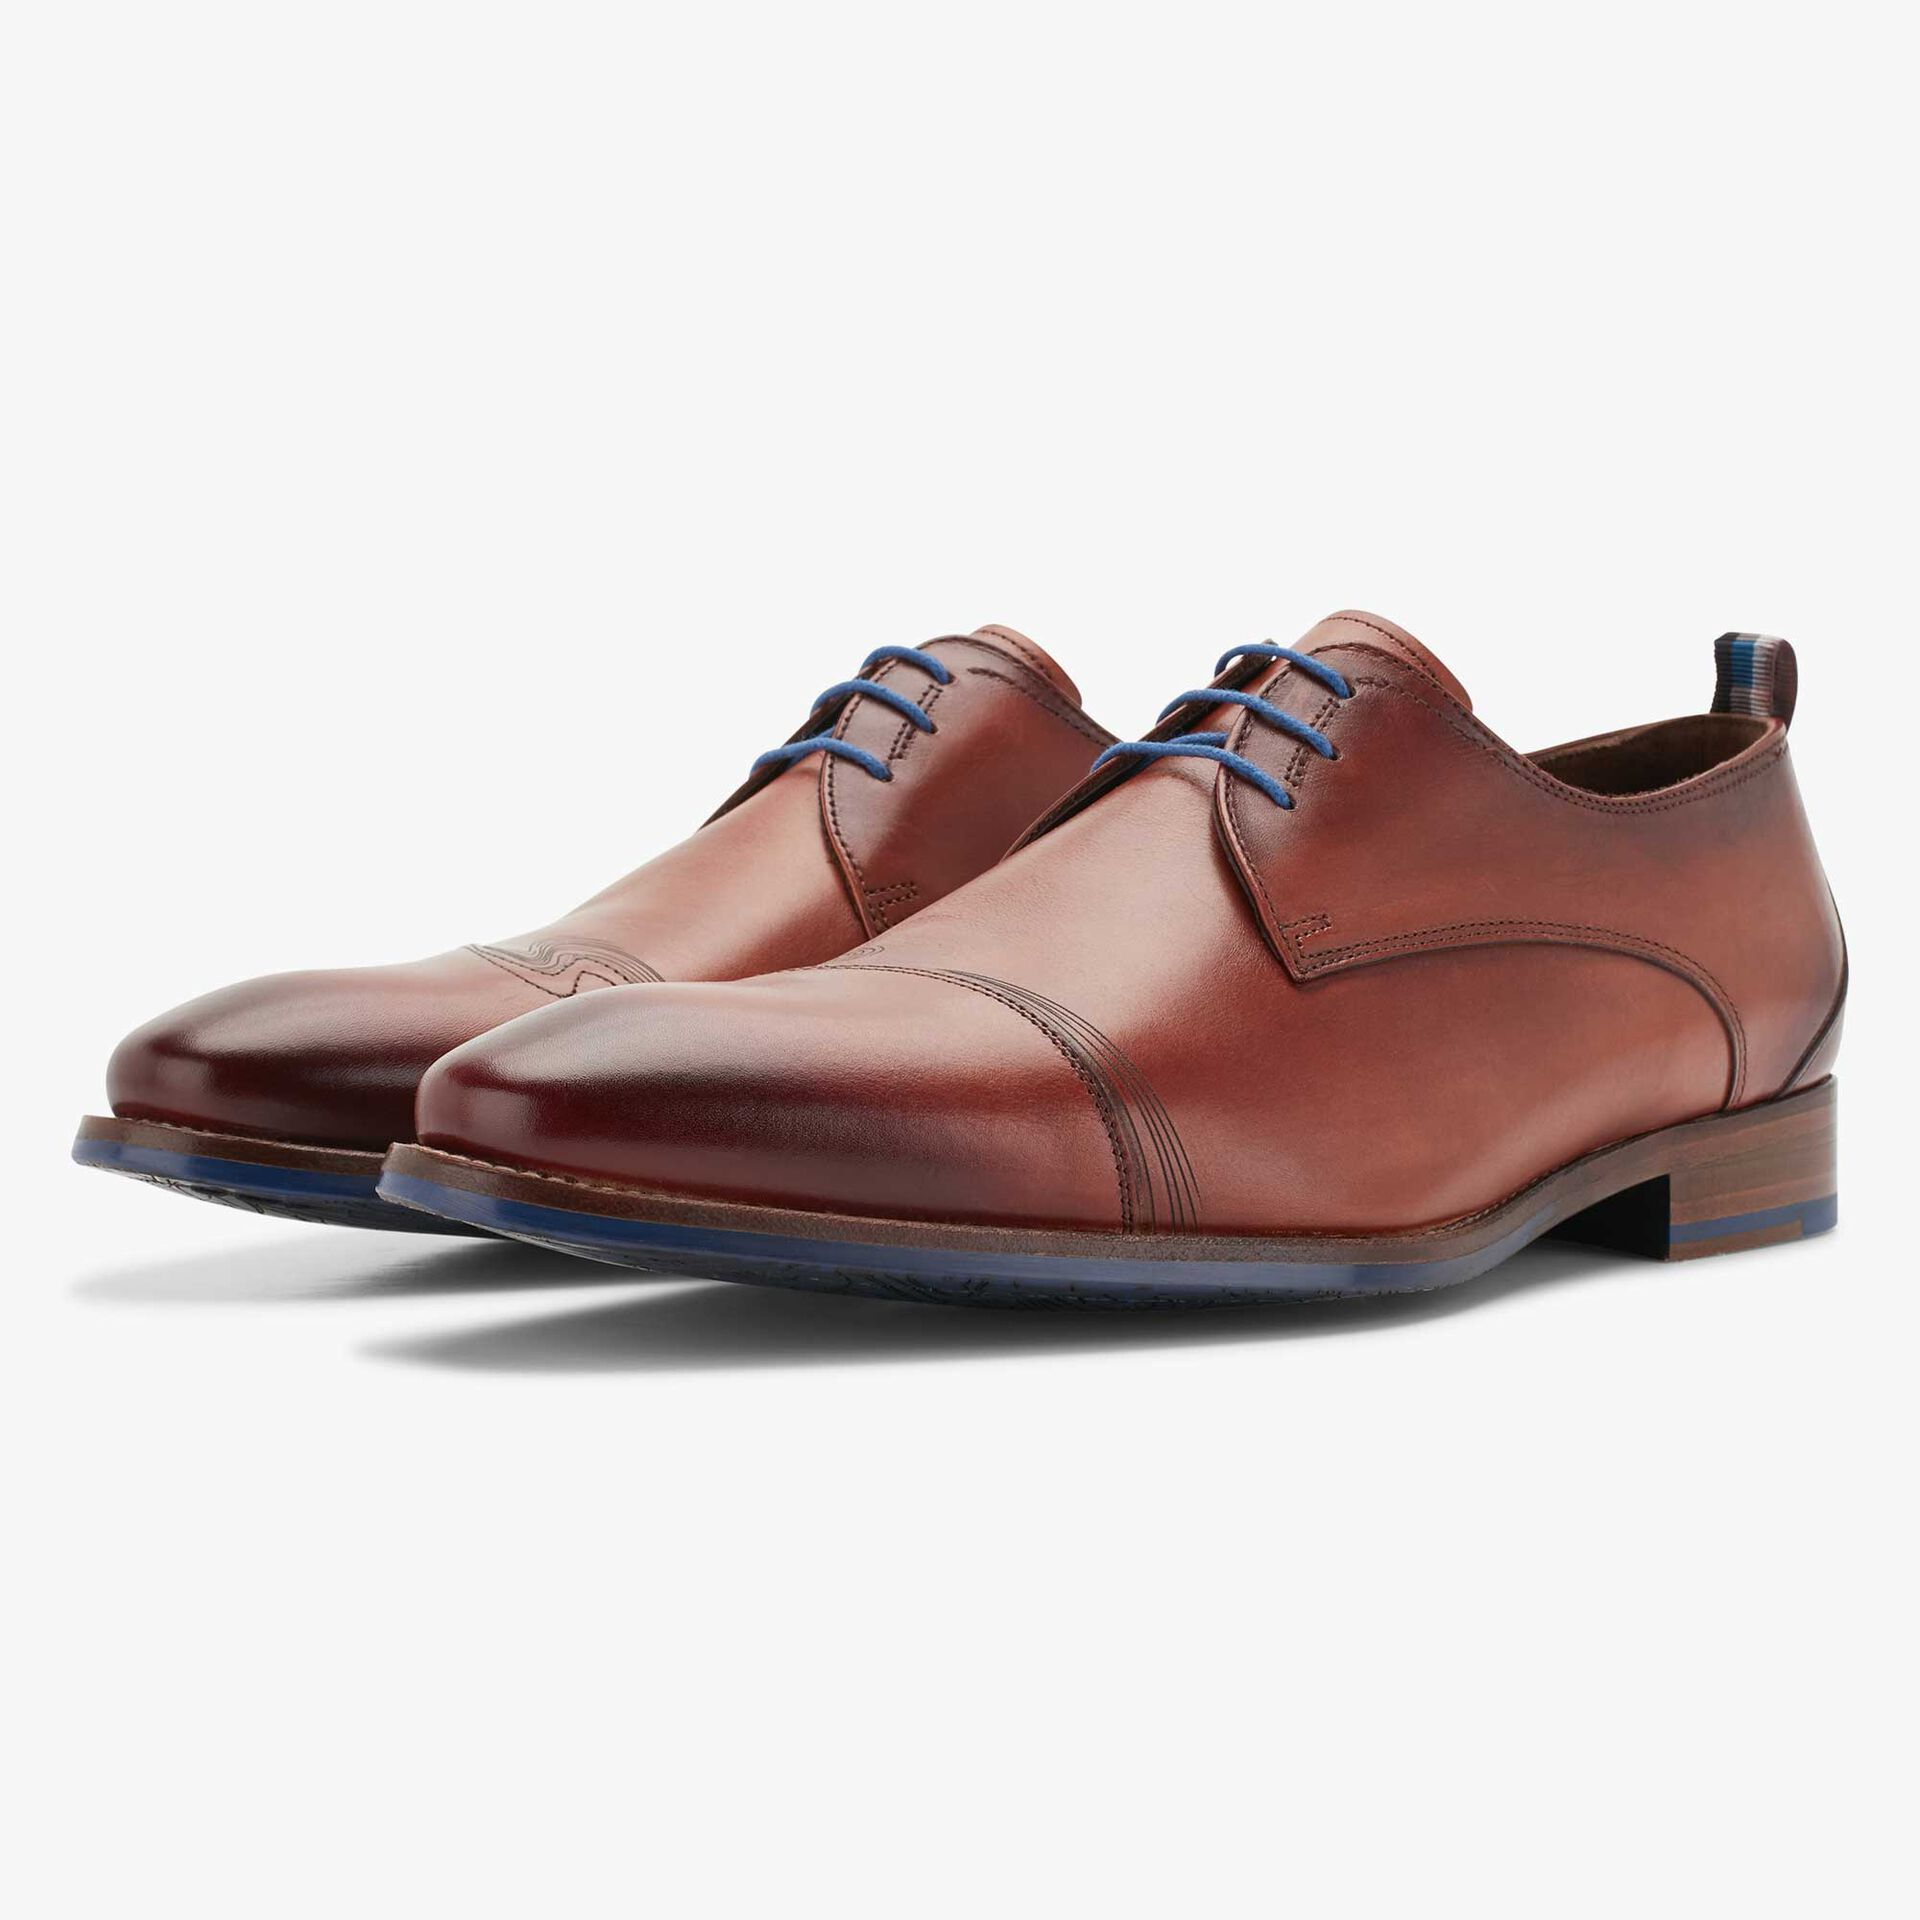 Cognac-coloured leather lace shoe